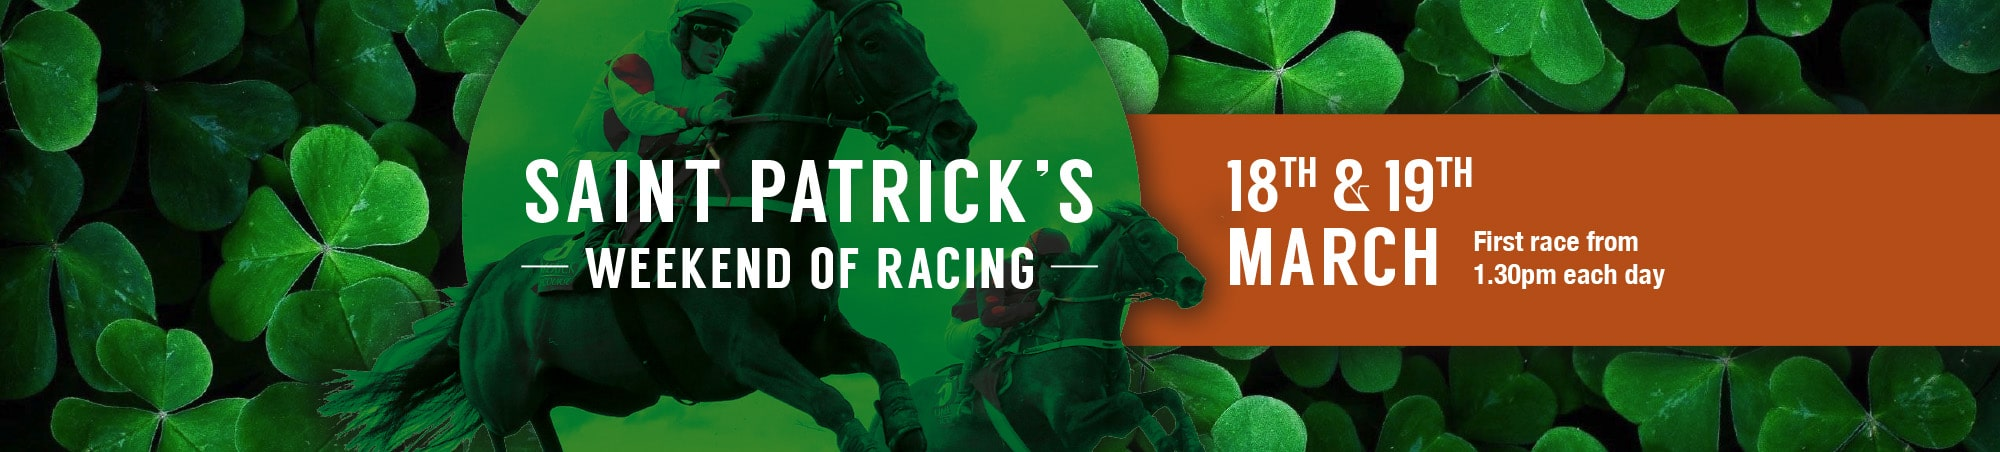 St-Paticks-weekend-Limerick-Racecourse